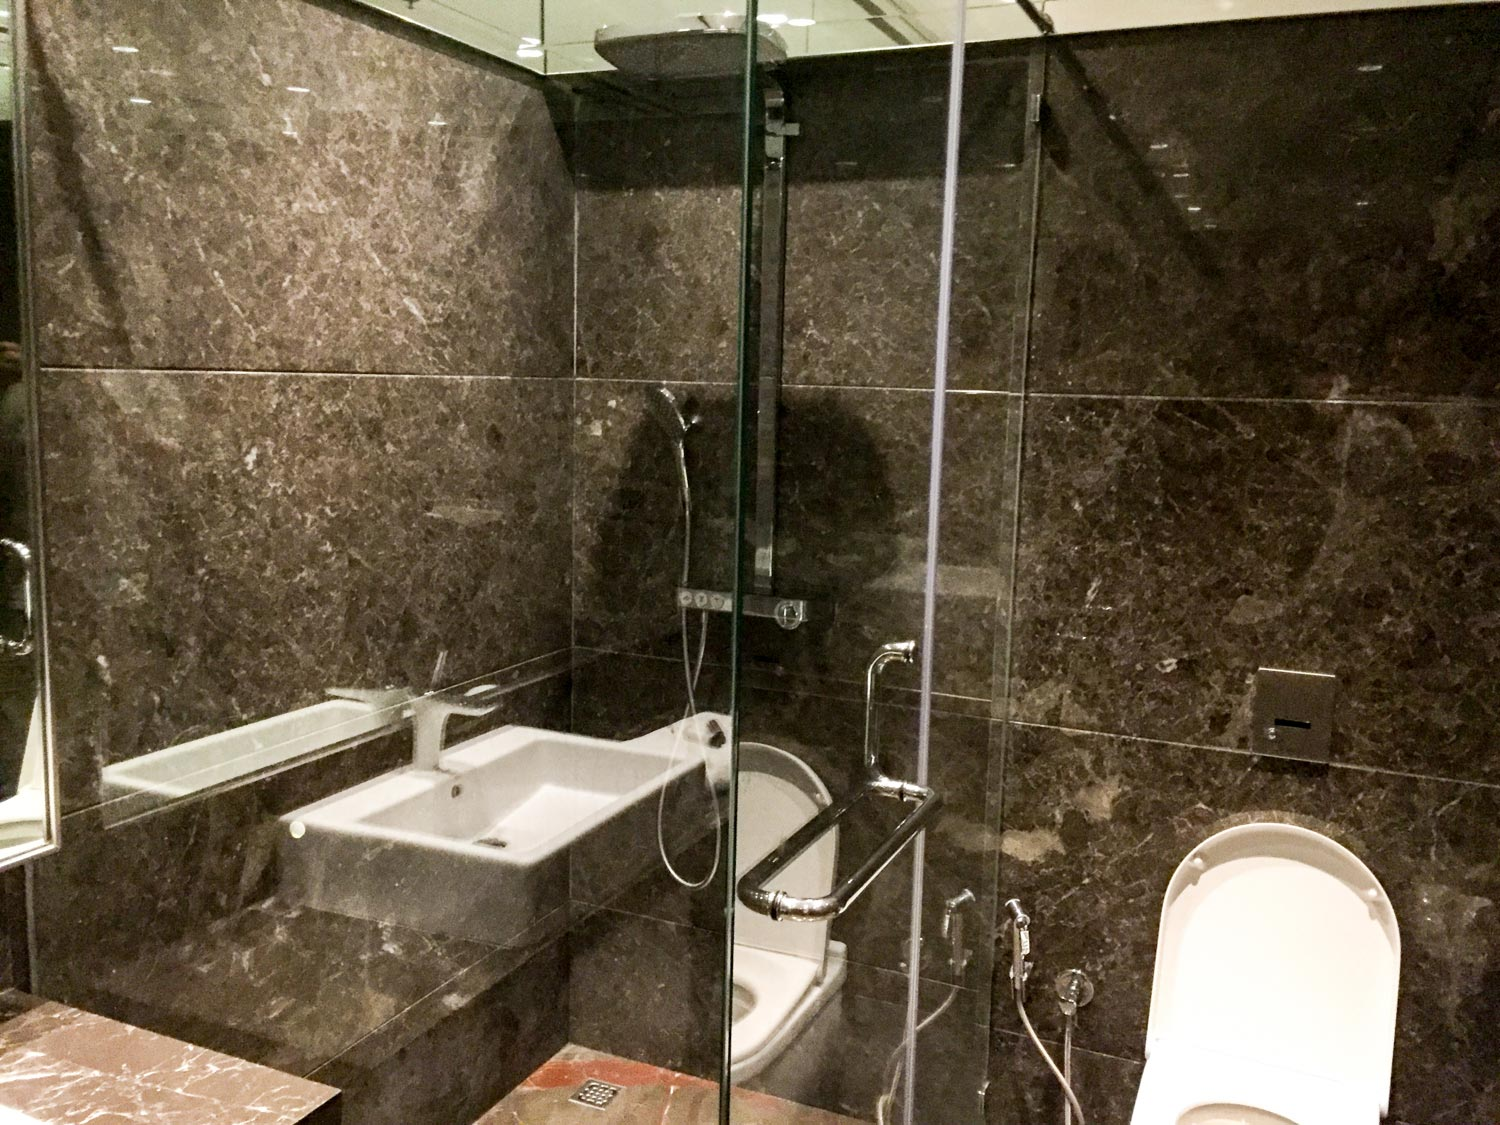 One of the shower rooms at GVK Airport Lounge Mumbai